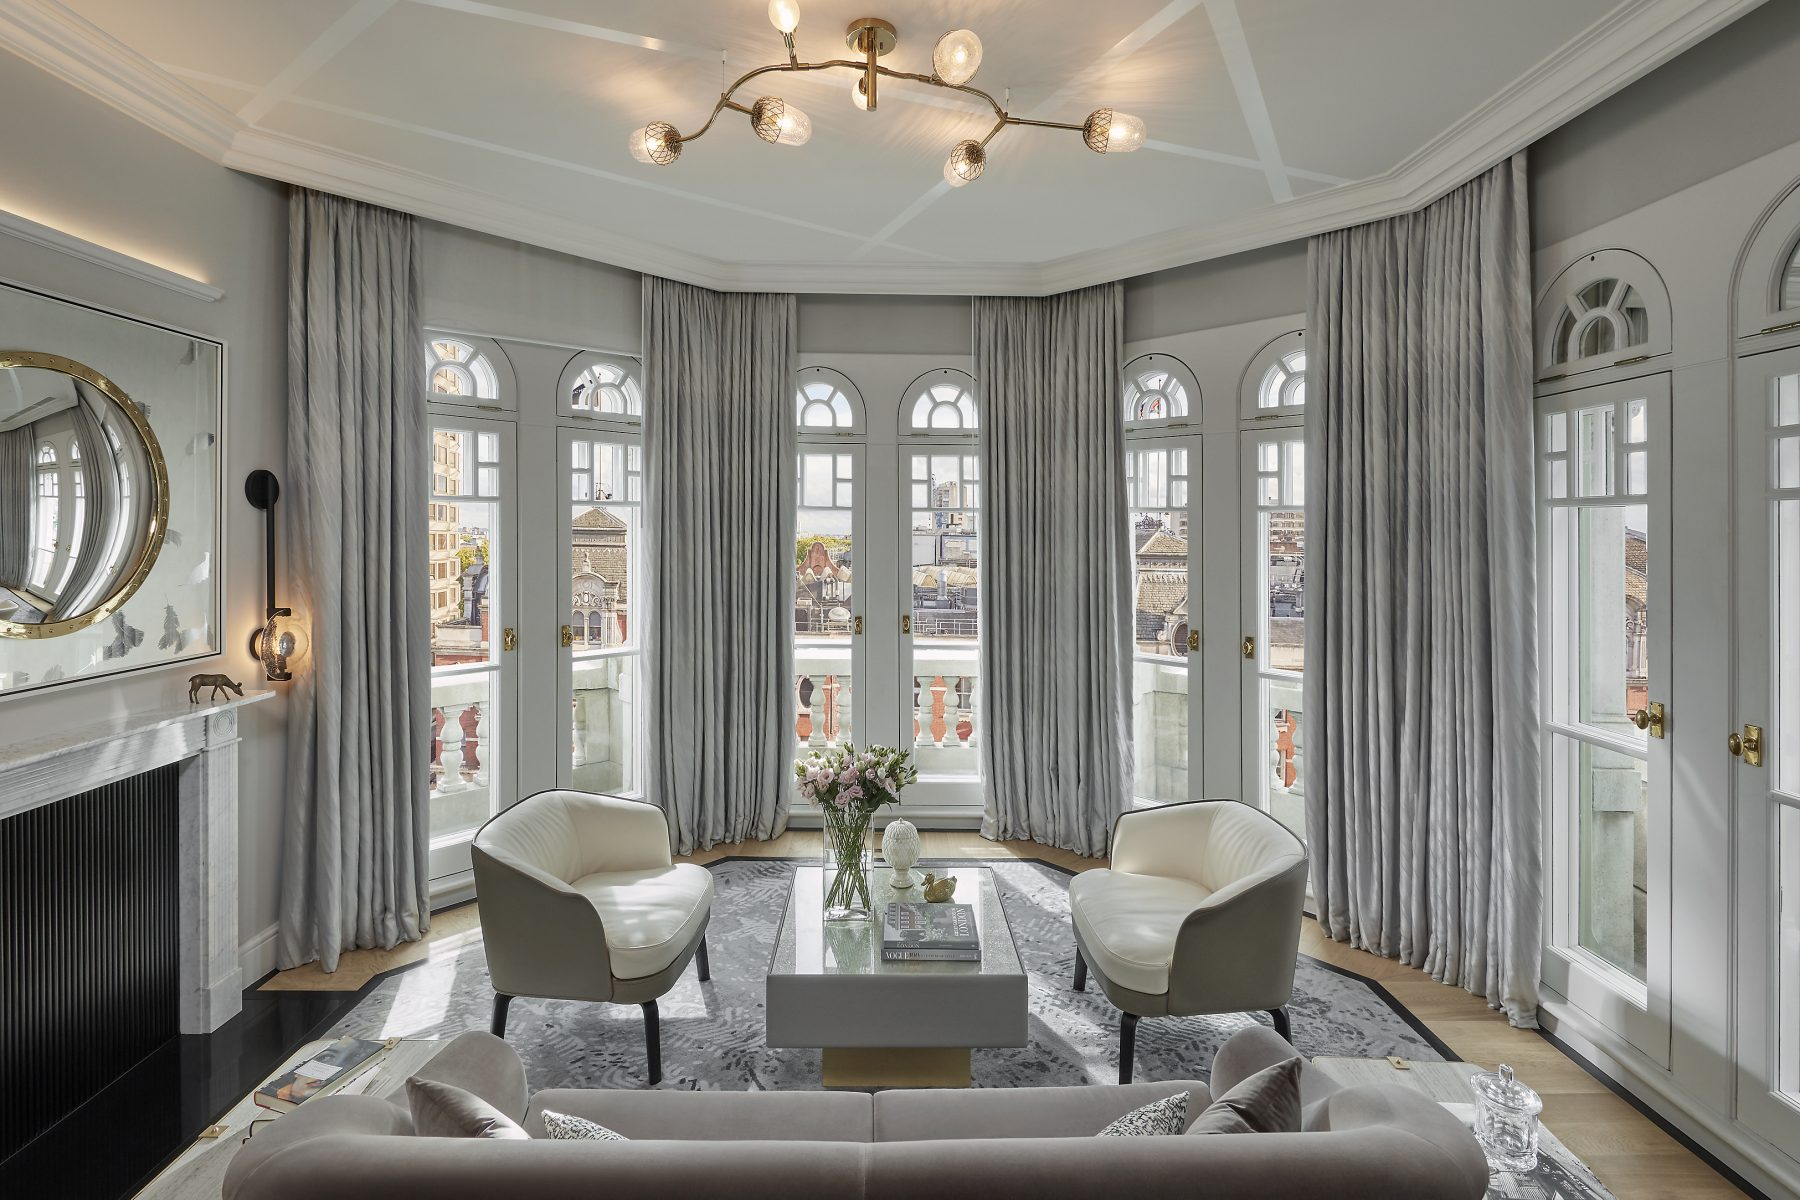 """london-2017-suite-turret-living-room-02 - dpa lighting consultants - """"Right  Light, Right Place, Right Time"""" ™"""